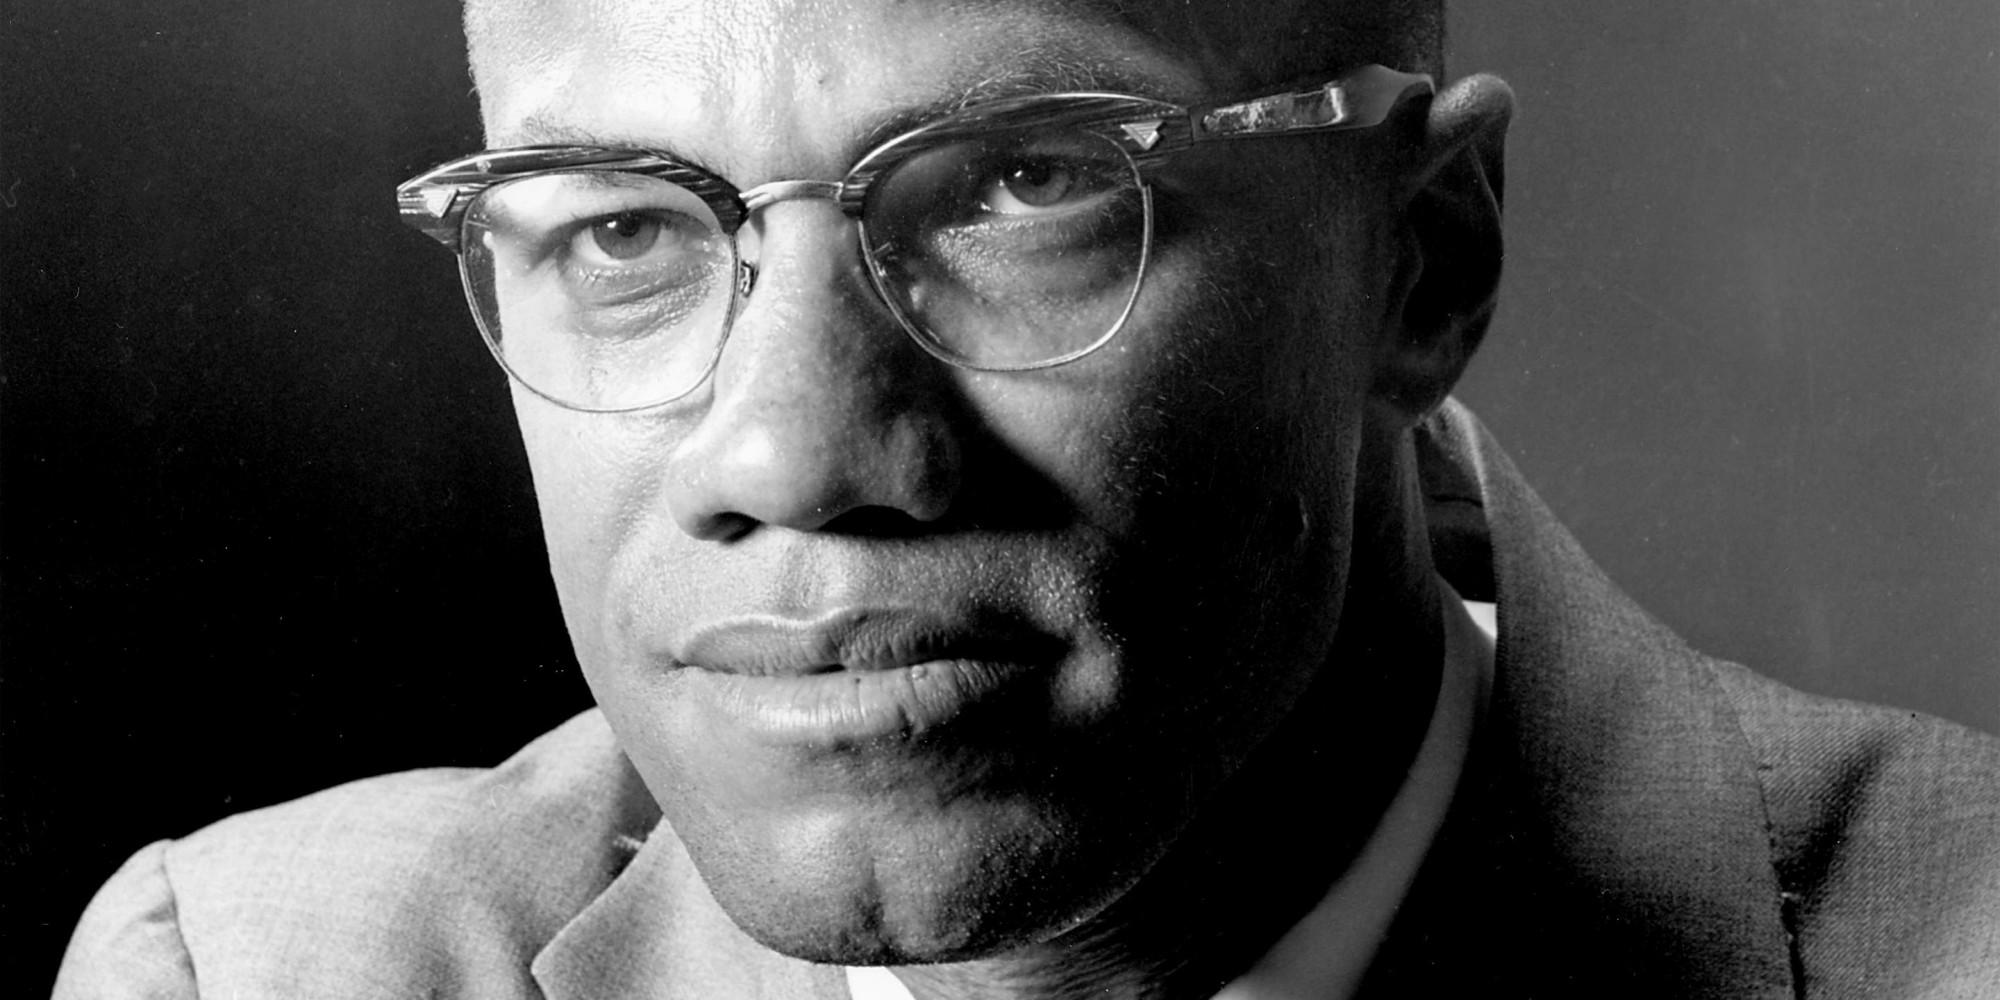 malcolm x and mlk relationship questions